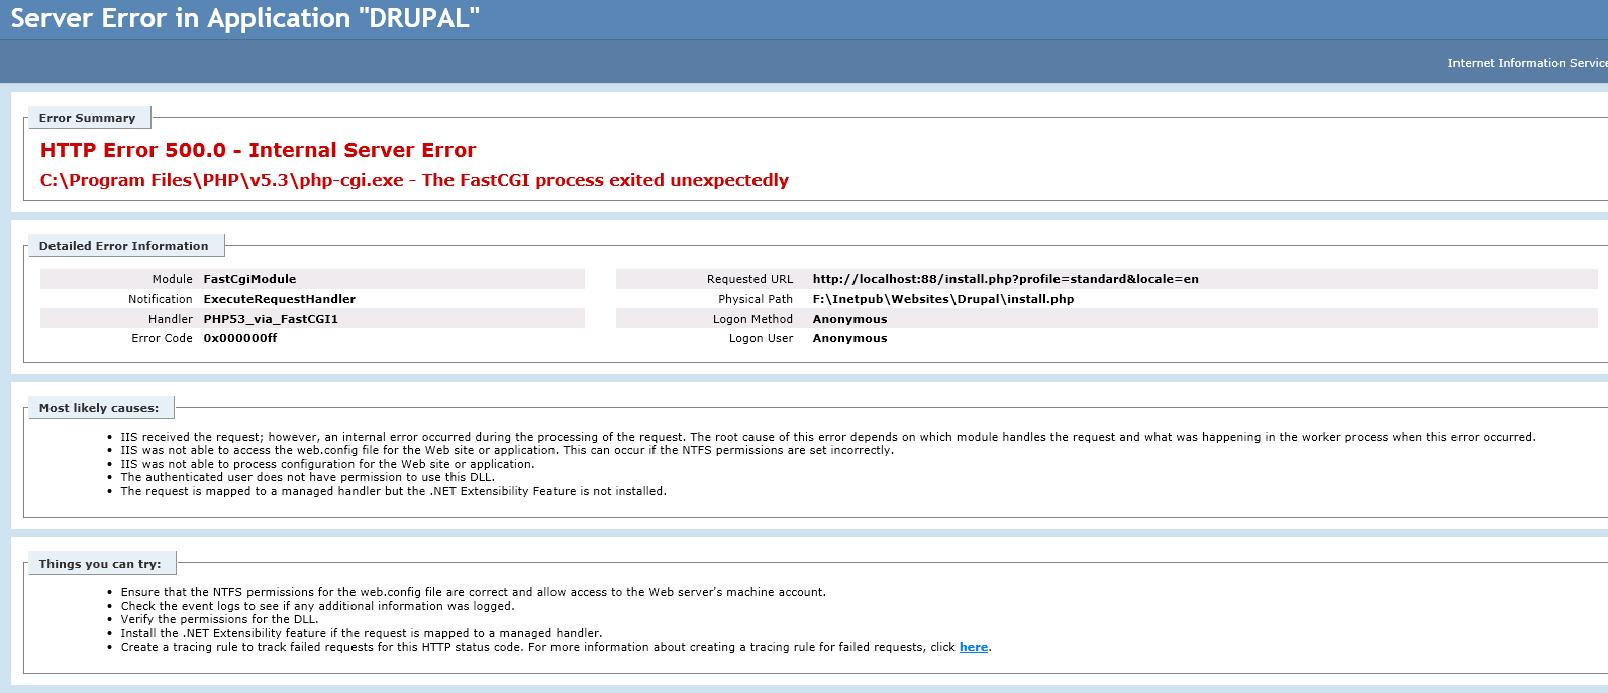 Auth (permission?) problem in IIS 7 | Drupal Groups